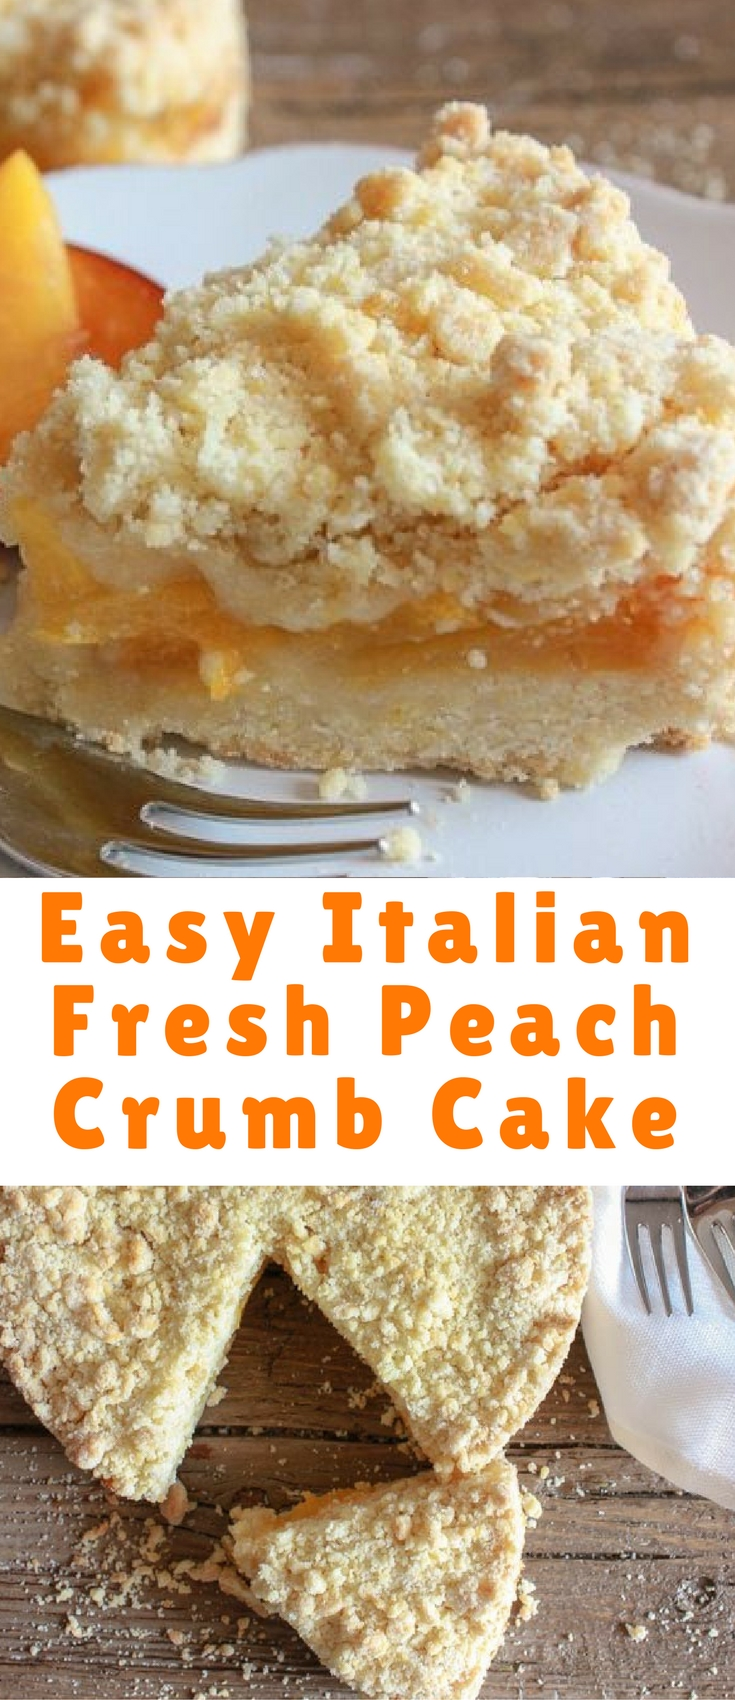 EASY ITALIAN FRESH PEACH CRUMB CAKE, MADE WITH FRESH OR CANNED PEACHES, A DELICIOUSLY BUTTERY CRUMB BOTTOM AND TOPPING, FILLED WITH AN AMAZING PEACH FILLING. THIS ITALIAN FRESH PEACH CRUMB CAKE IS THE PERFECT ANYTIME DESSERT!